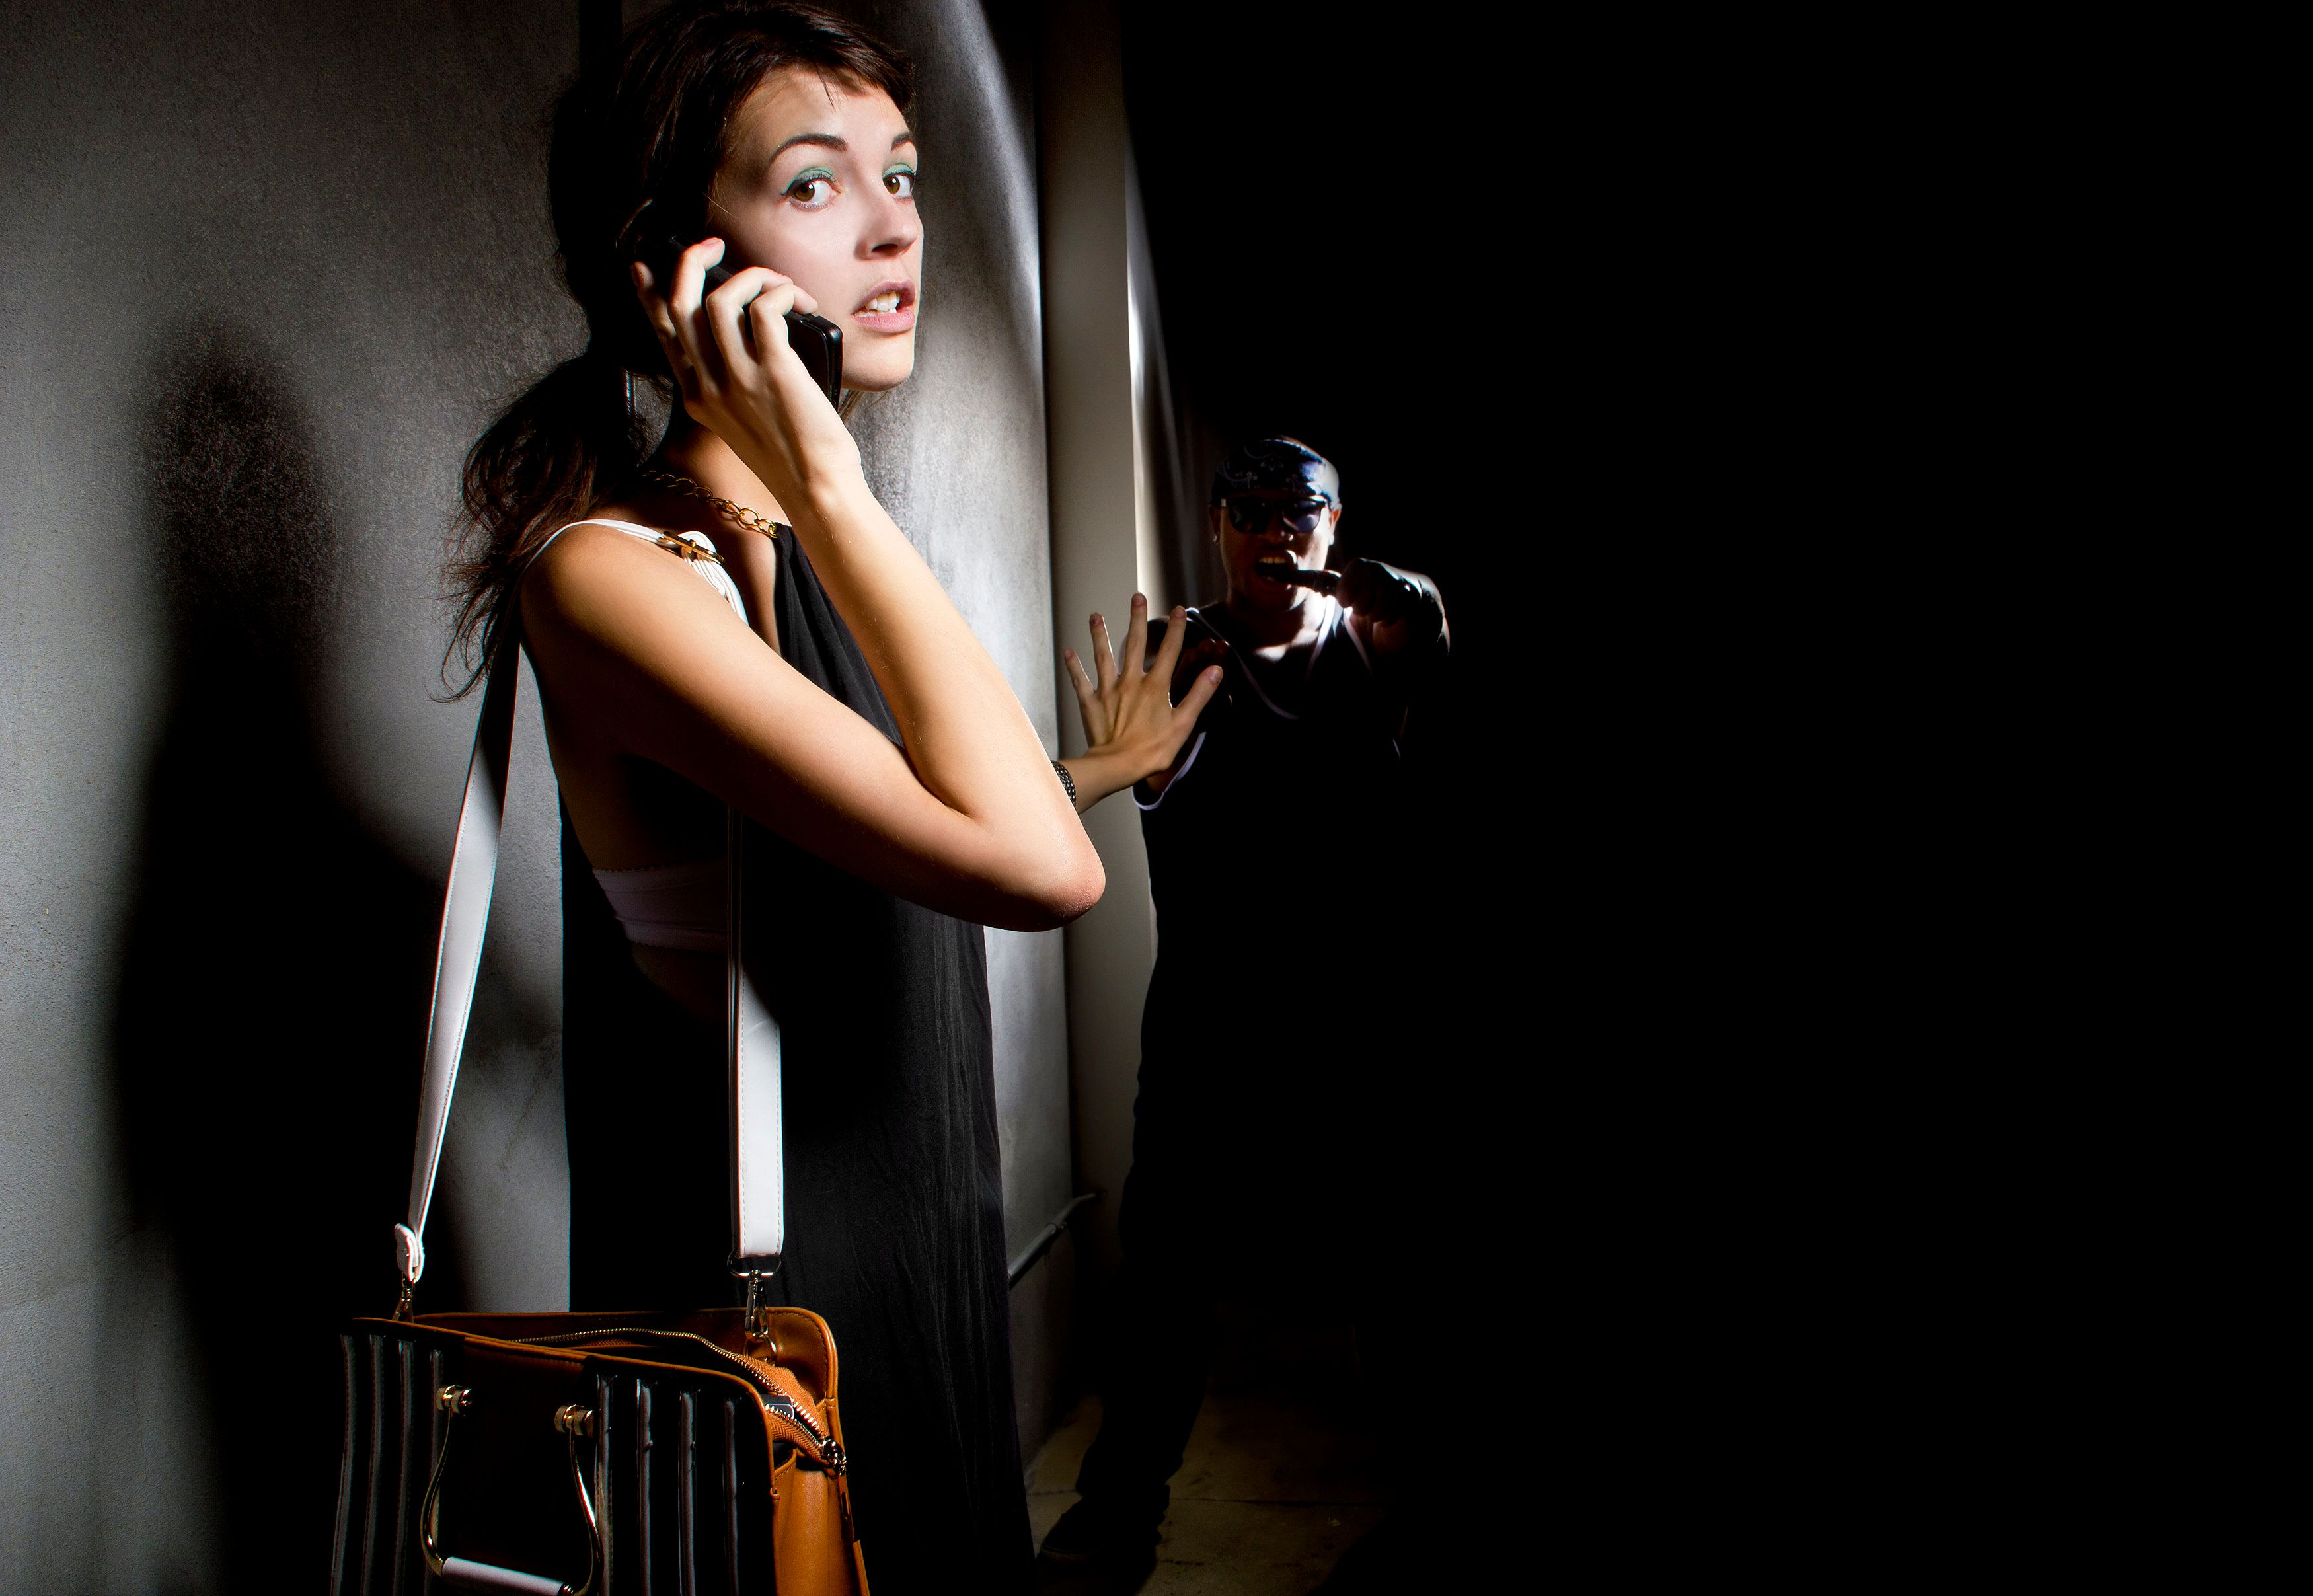 Photo of a woman calling 911 for help in an alley.  A criminal is hiding in the shadows of the street and stalking her.  The man is a robber or mugger, The female is holding a cell phone and calling the police. The image depicts crime and security.